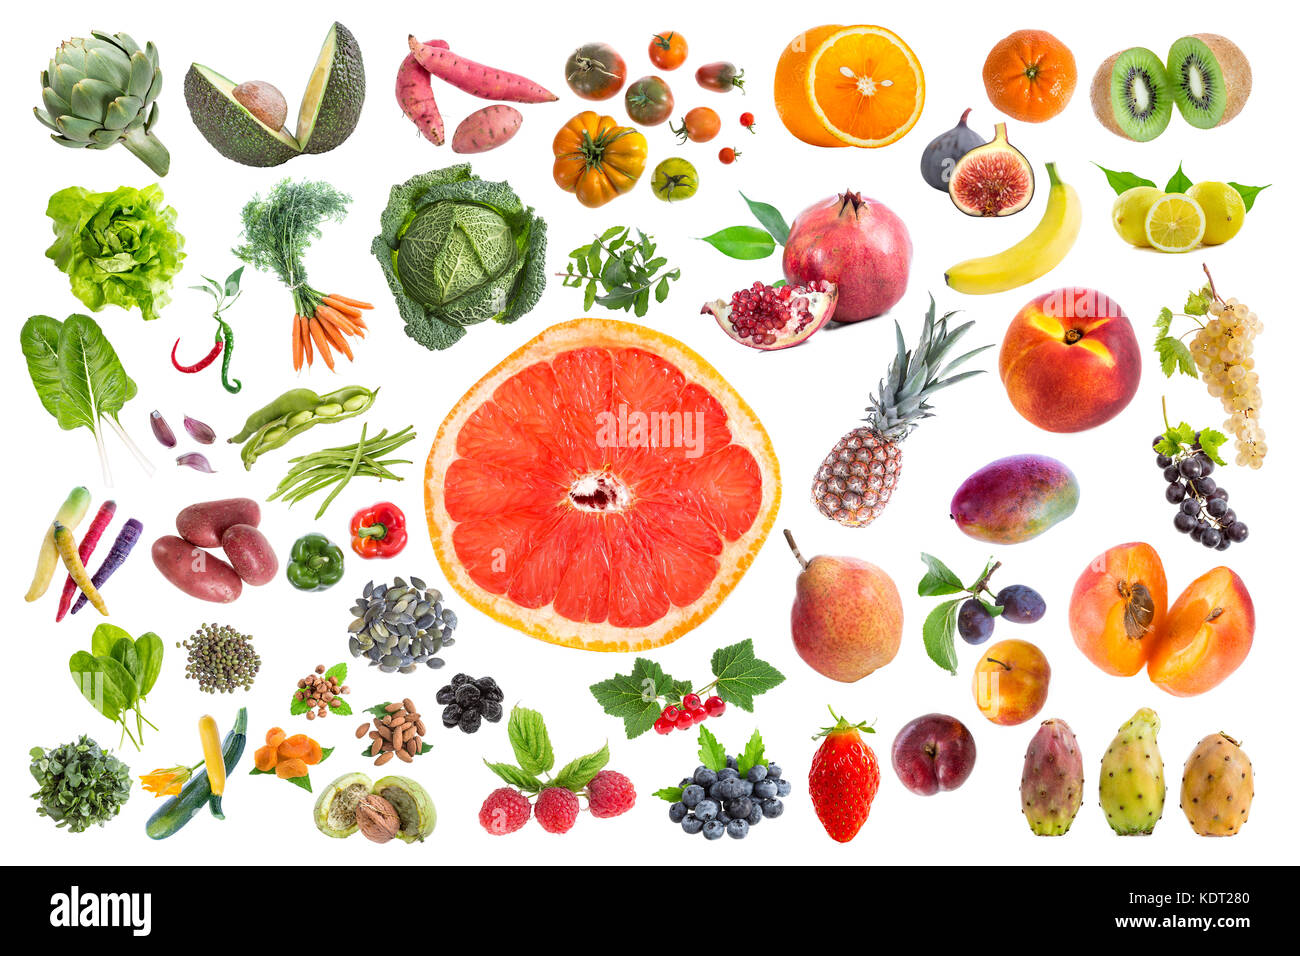 Concept of healthy food, Various Fruits and vegetables to eat five a day on withte background with grapfruit slice - Stock Image